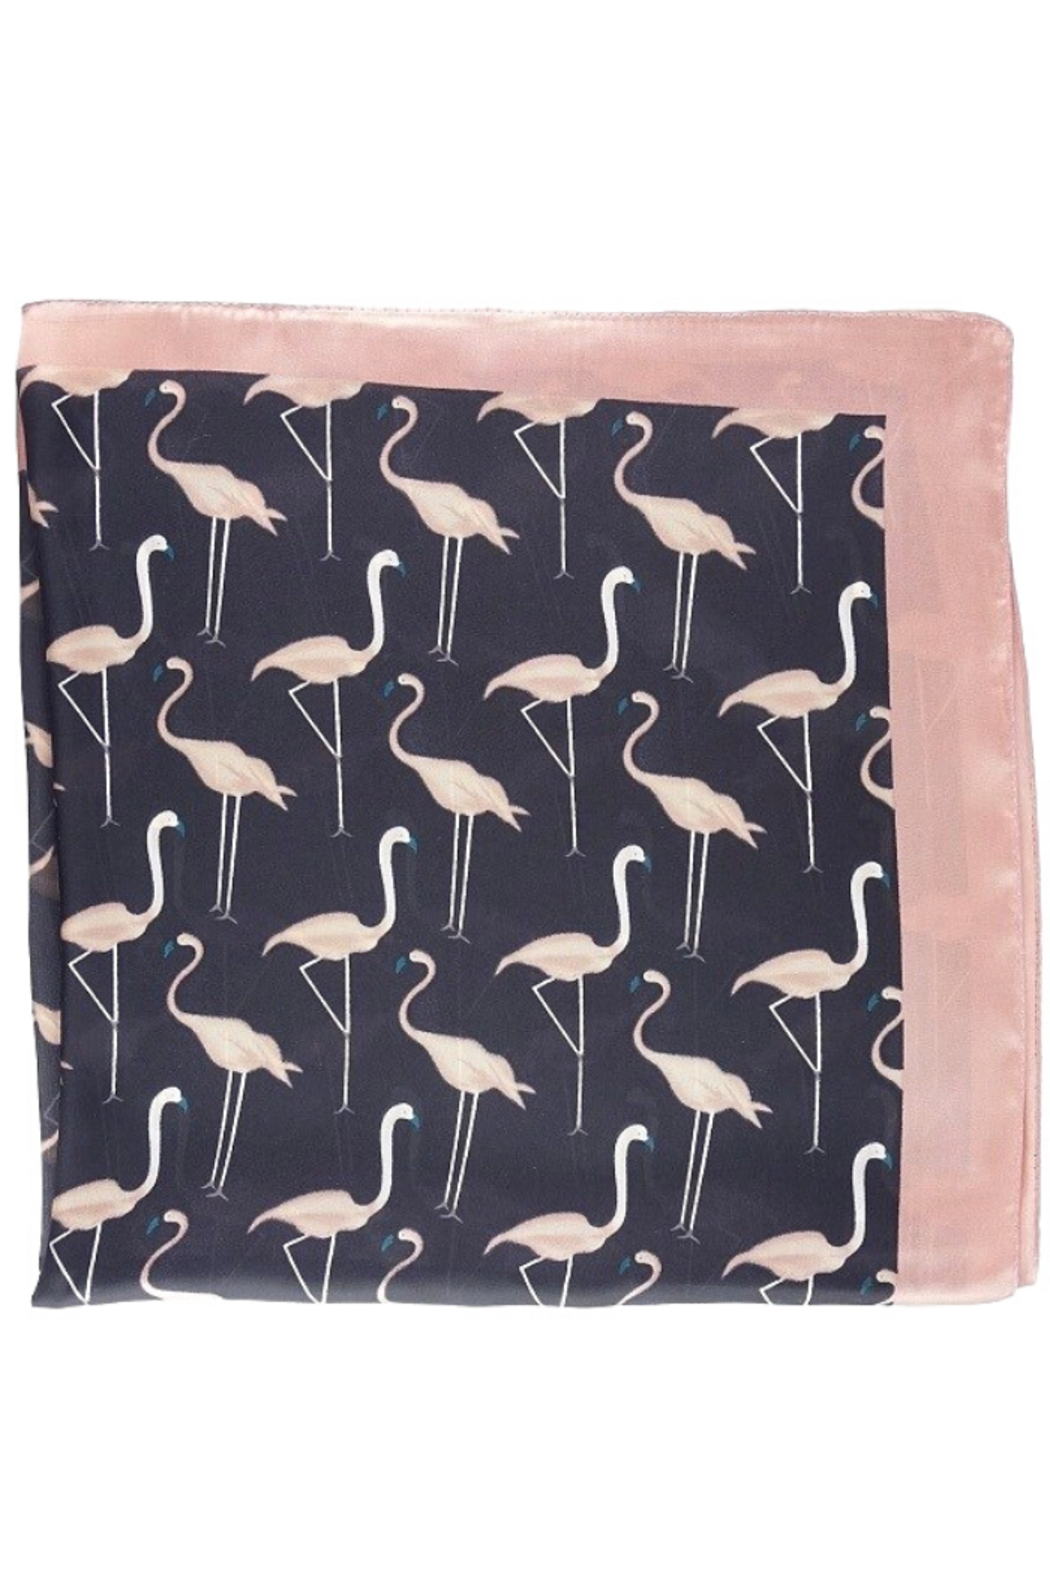 Olive and Pique Flamingo Print Neckerchief - Front Full Image